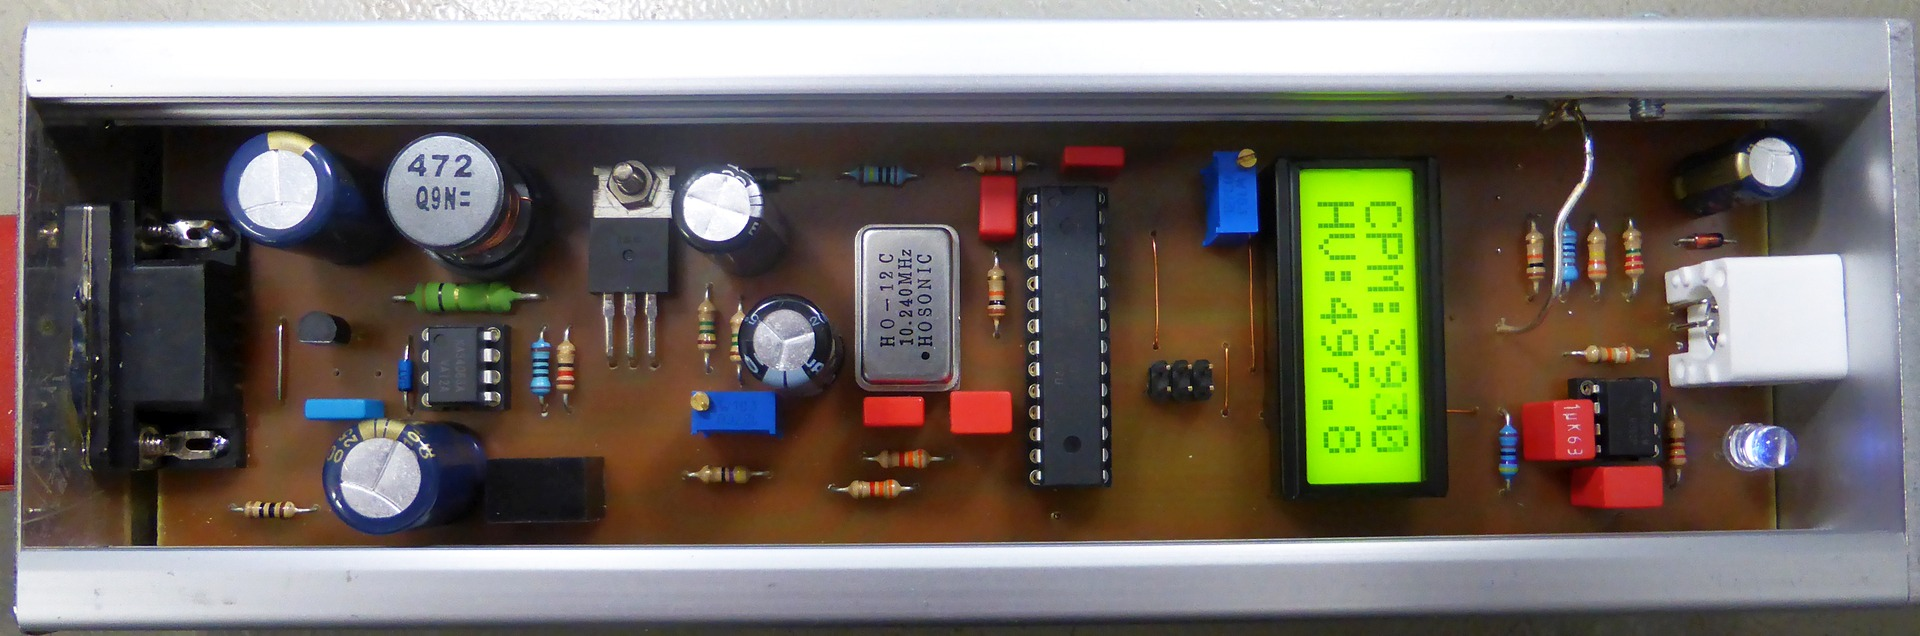 Homebrew Geiger Counter With Envico Adapter I2c Slave Circuit